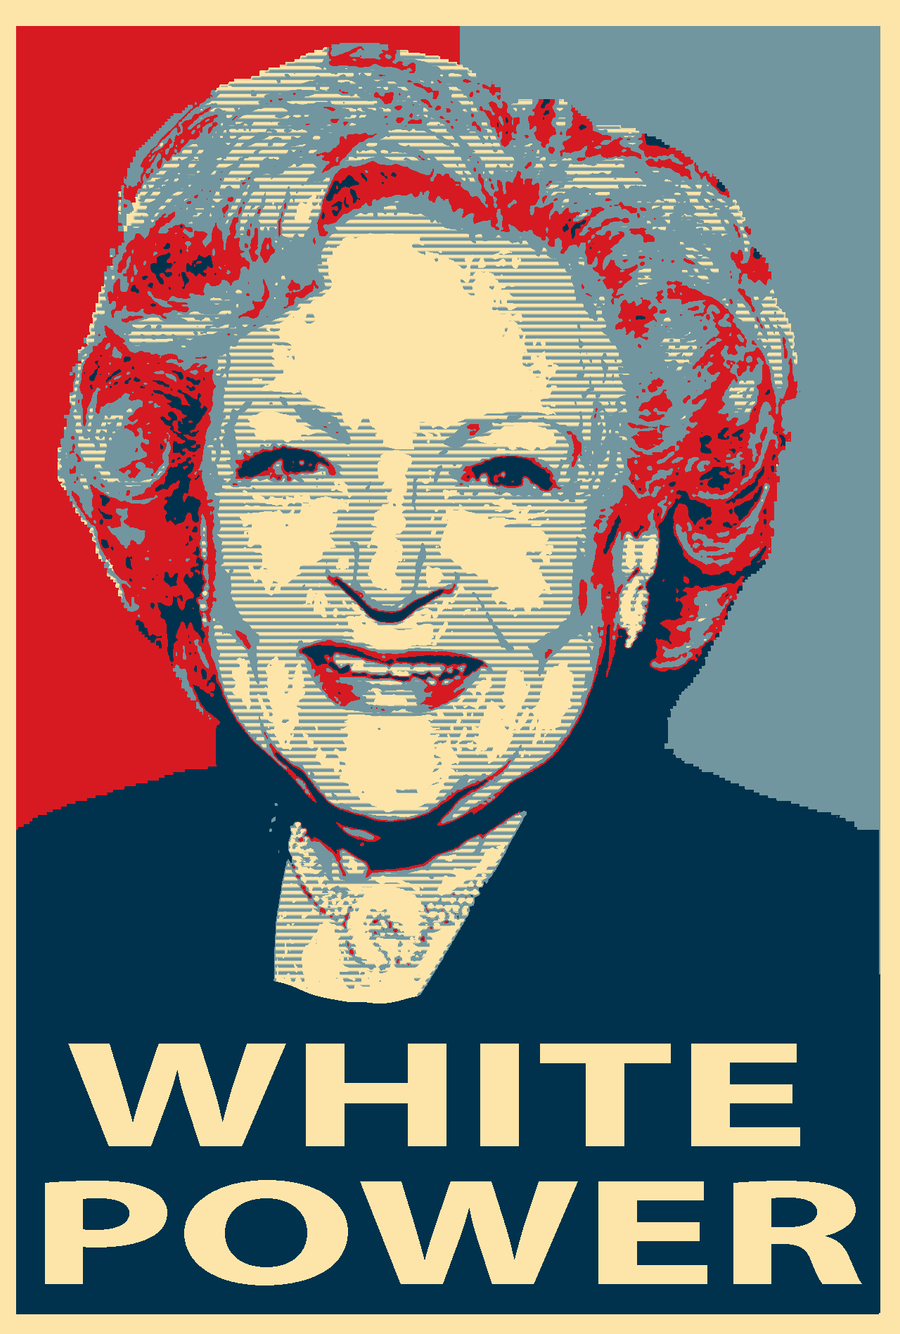 Betty White for President by picklejuice13